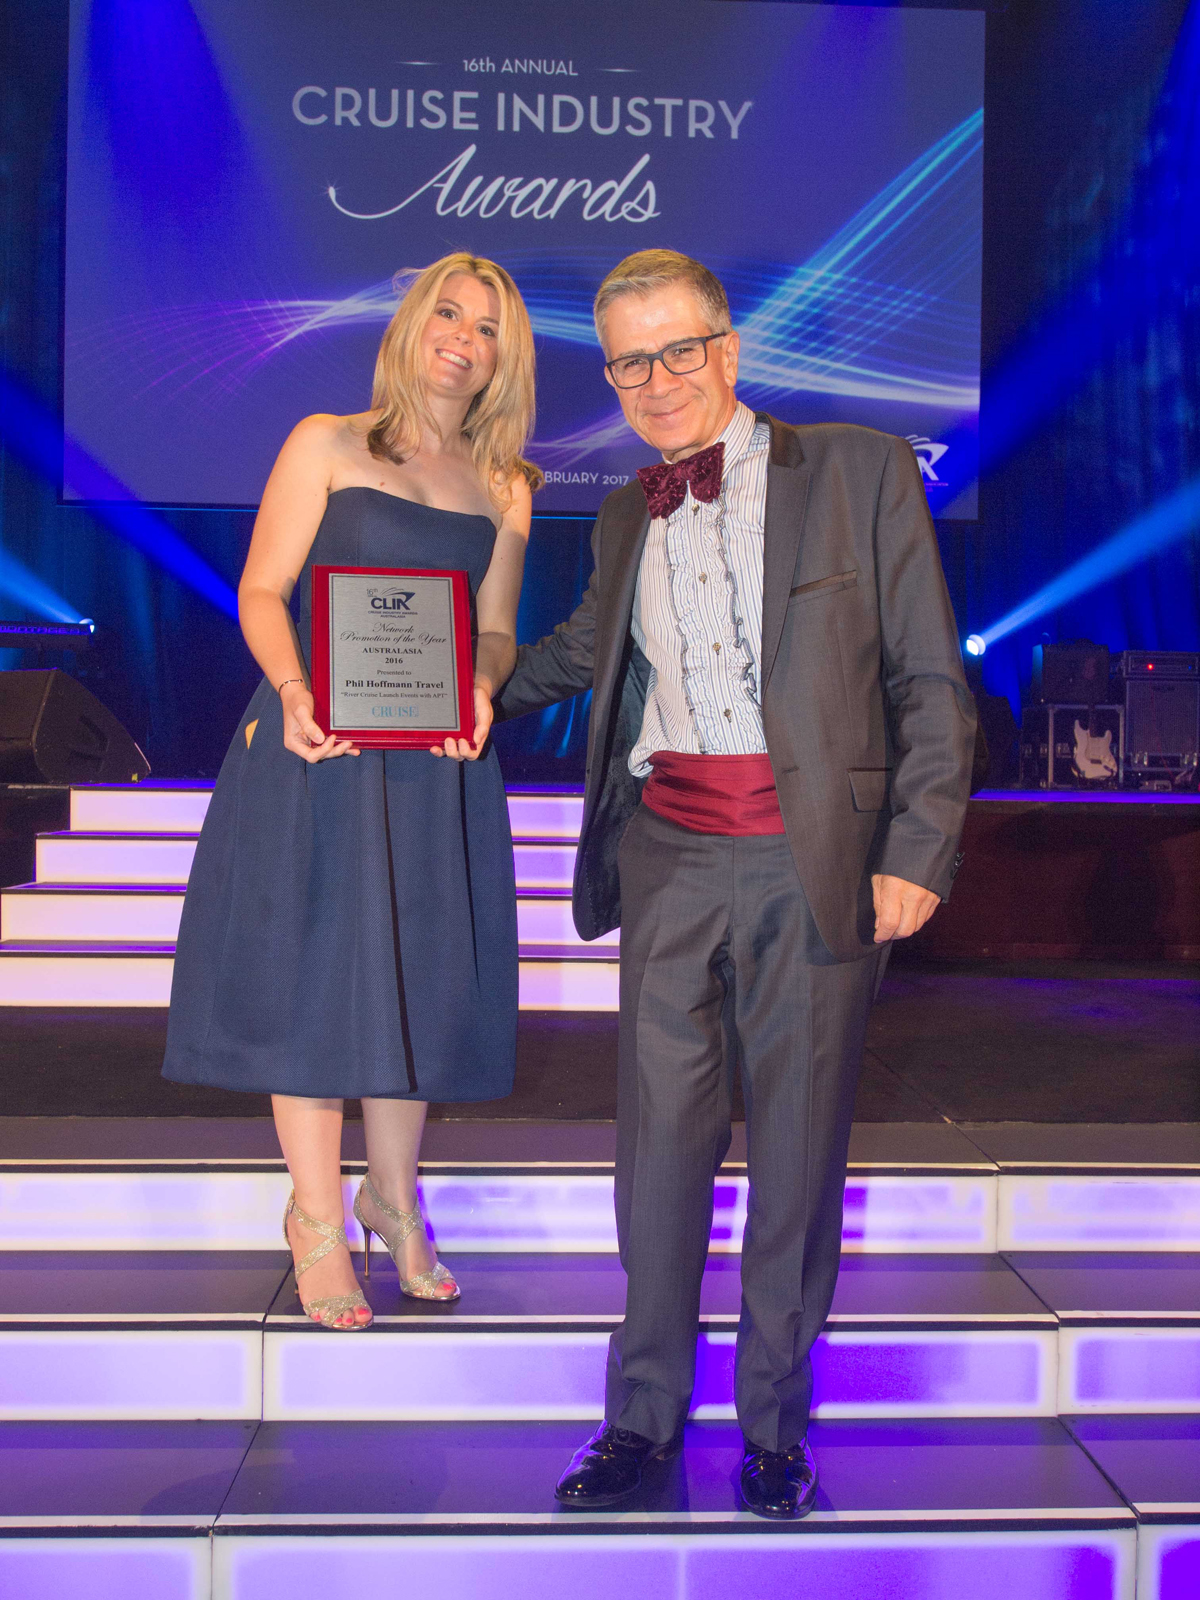 Michelle Mickan from Phil Hoffmann Travel Network Promotion of the Year winner with Cruise Passenger publisher Peter Lynch